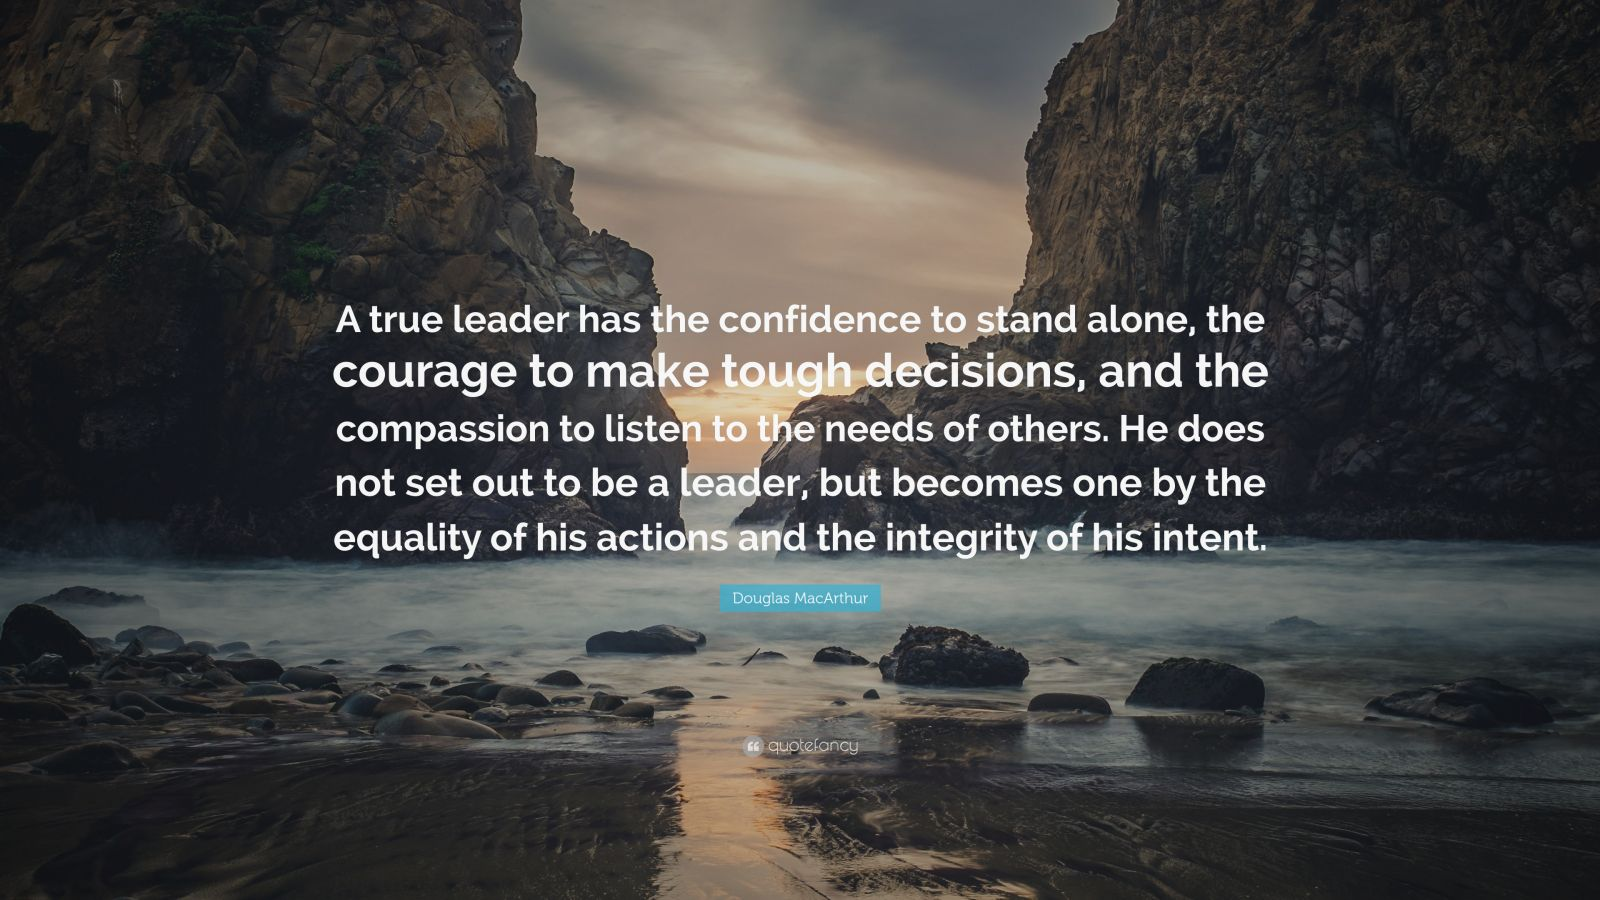 "Douglas MacArthur Quote: ""A true leader has the confidence to stand alone, the courage to make tough decisions, and the compassion to listen to the needs of others. He does not set out to be a leader, but becomes one by the equality of his actions and the integrity of his intent."""